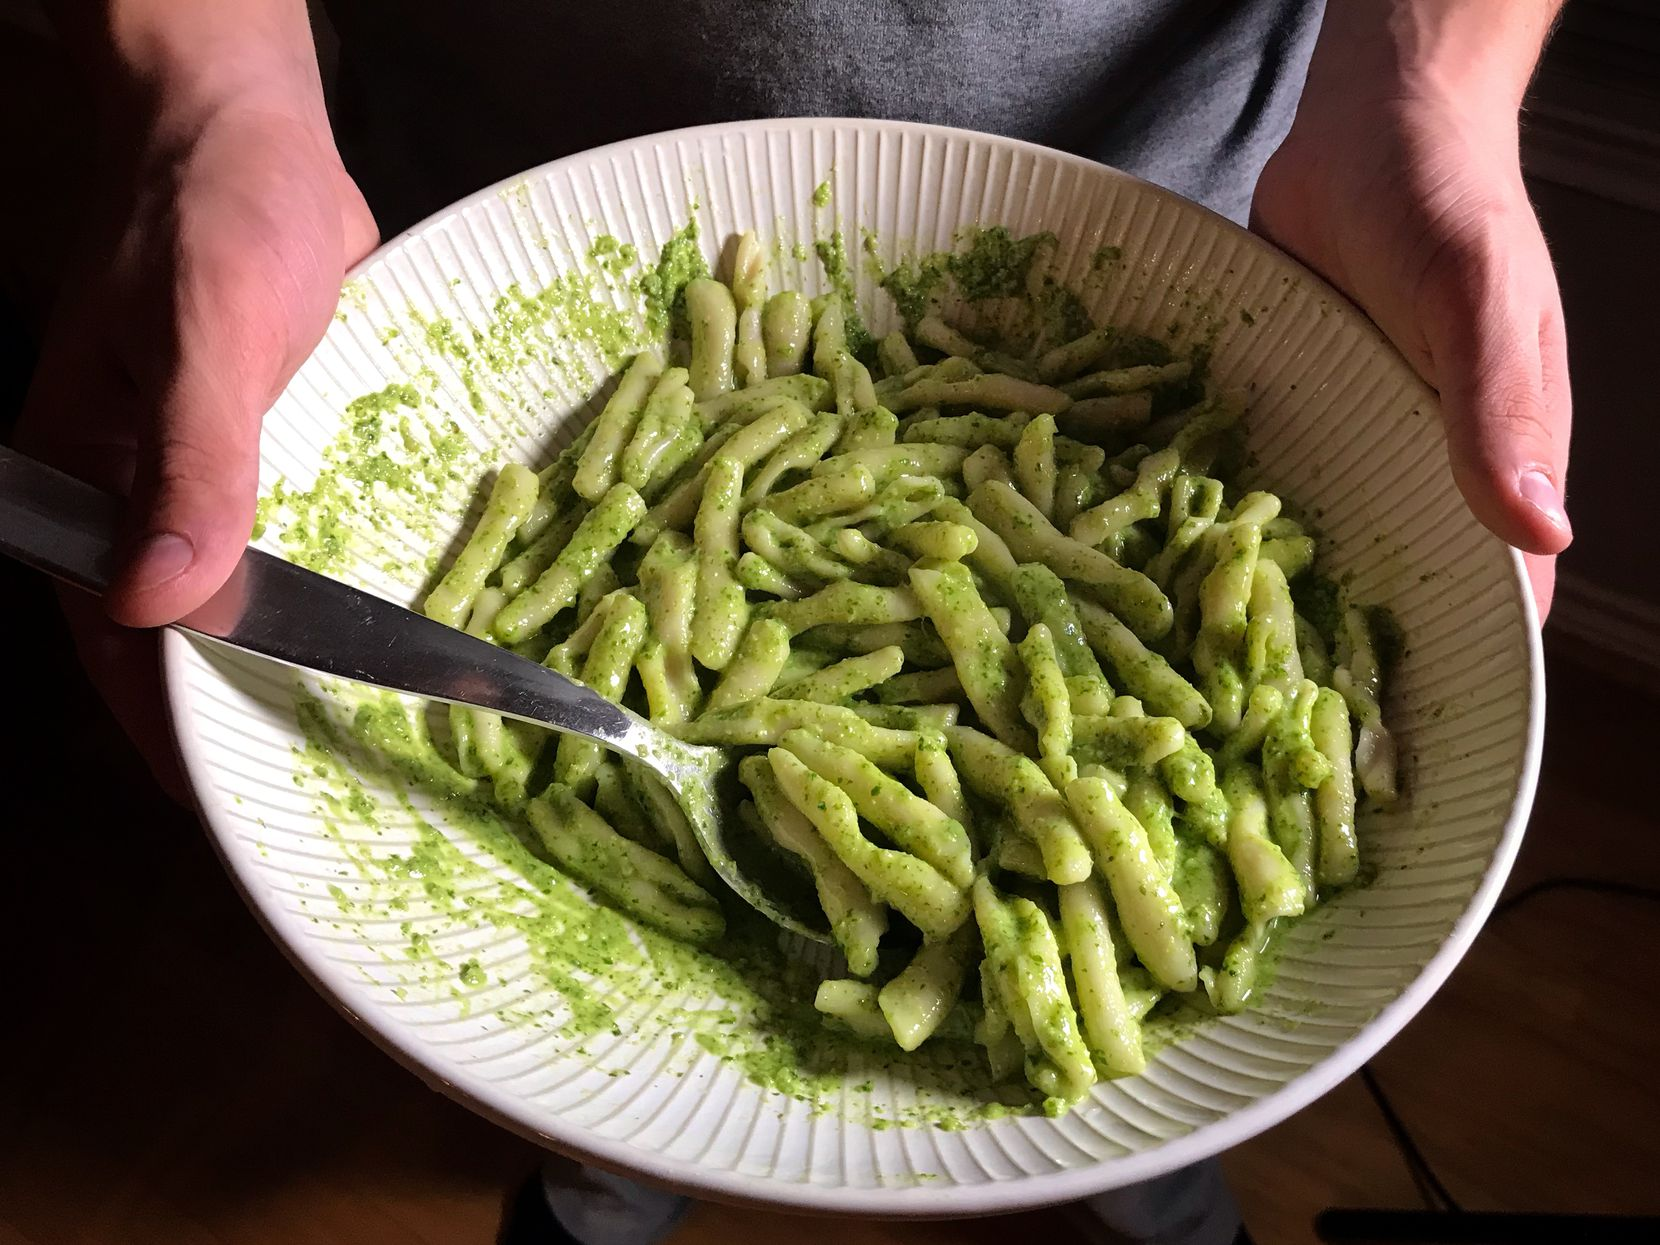 Cavatelli pasta with pesto sauce